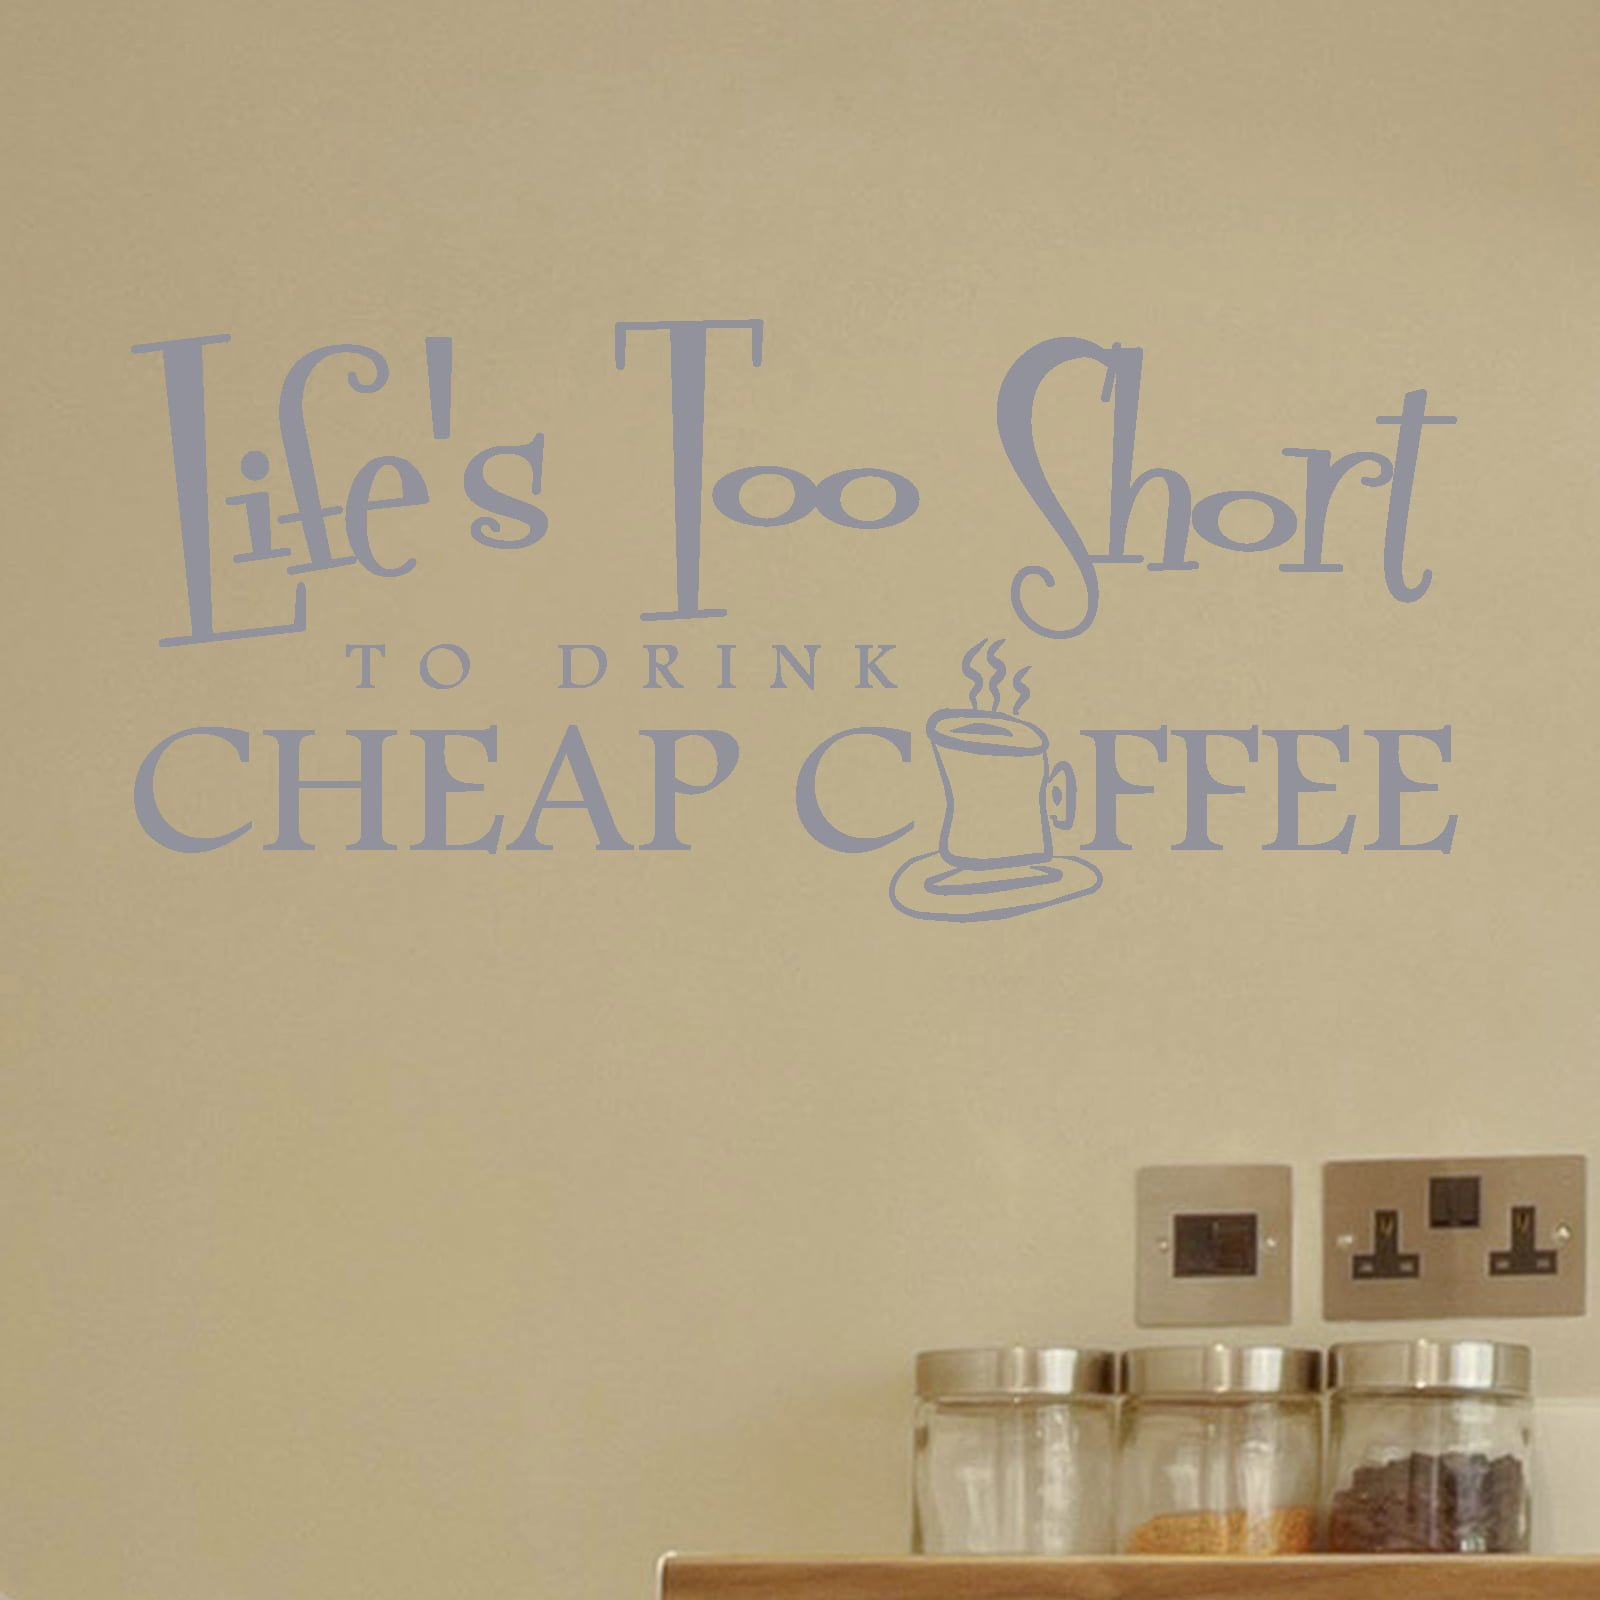 Cheap coffee kitchen quote wall sticker world of wall stickers amipublicfo Images